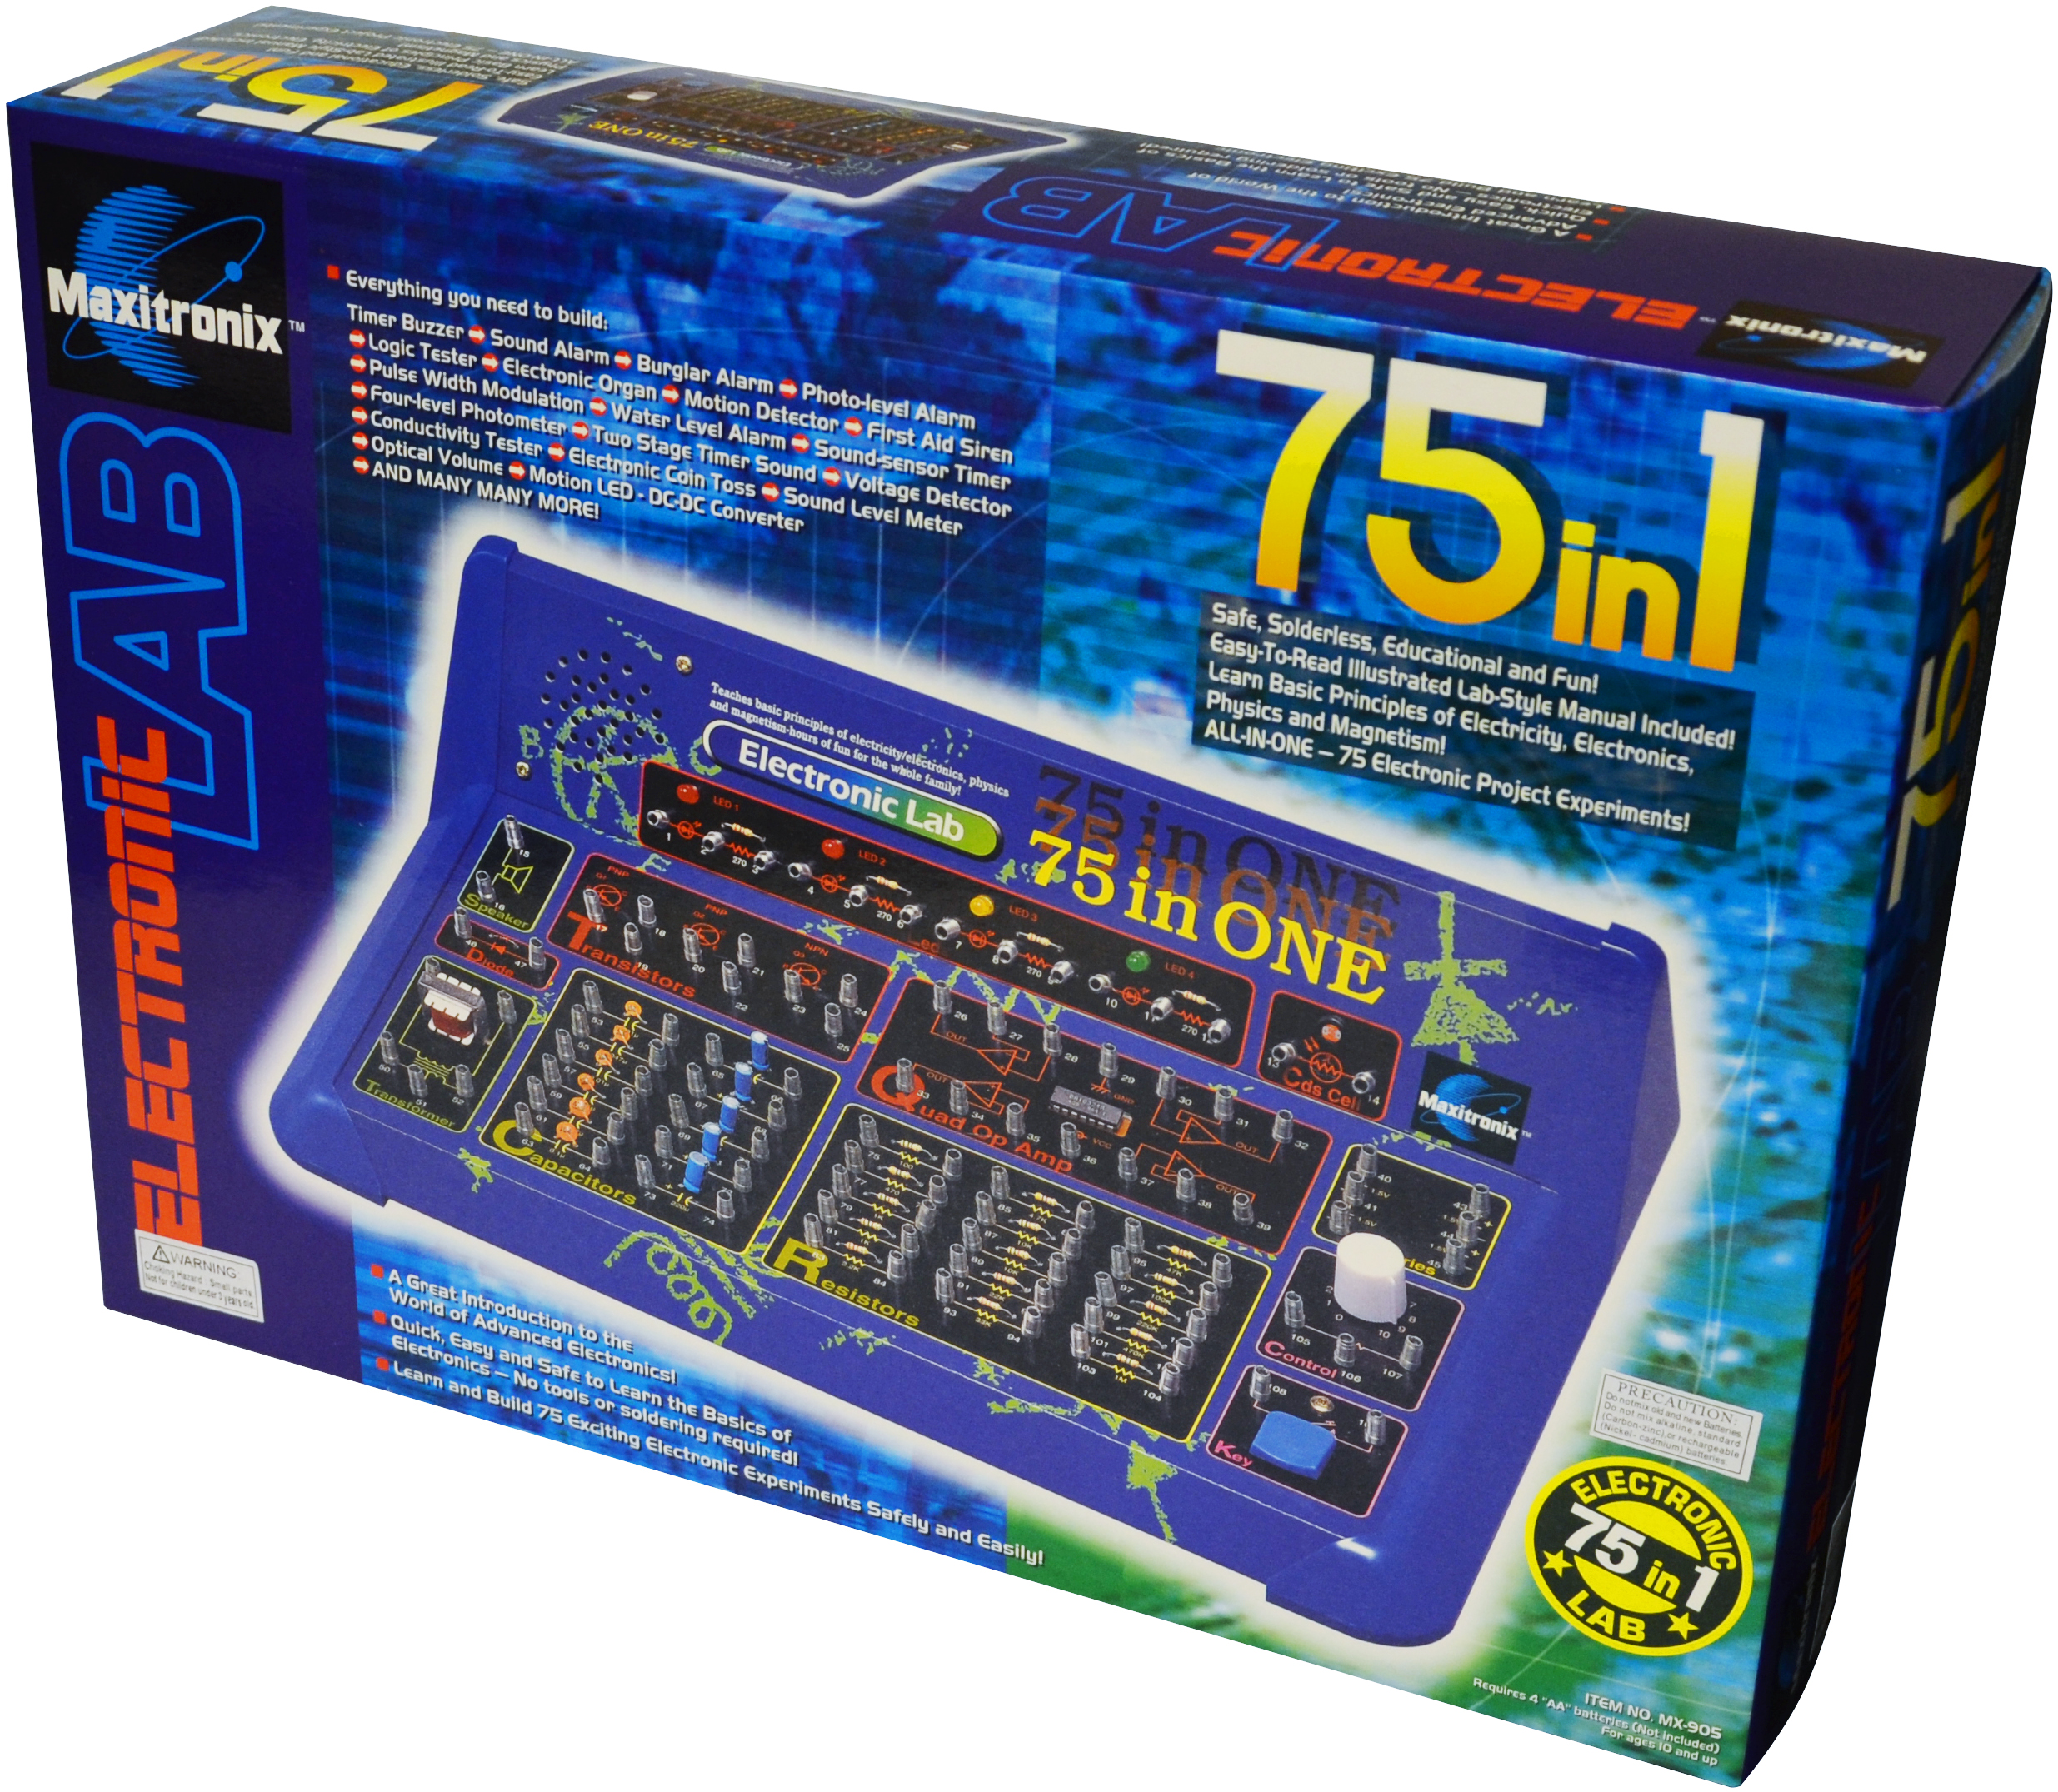 Elenco 75 In 1 Electronics Learning Lab Mx905 Circuits Projects Electronic Kits Hobby More 2